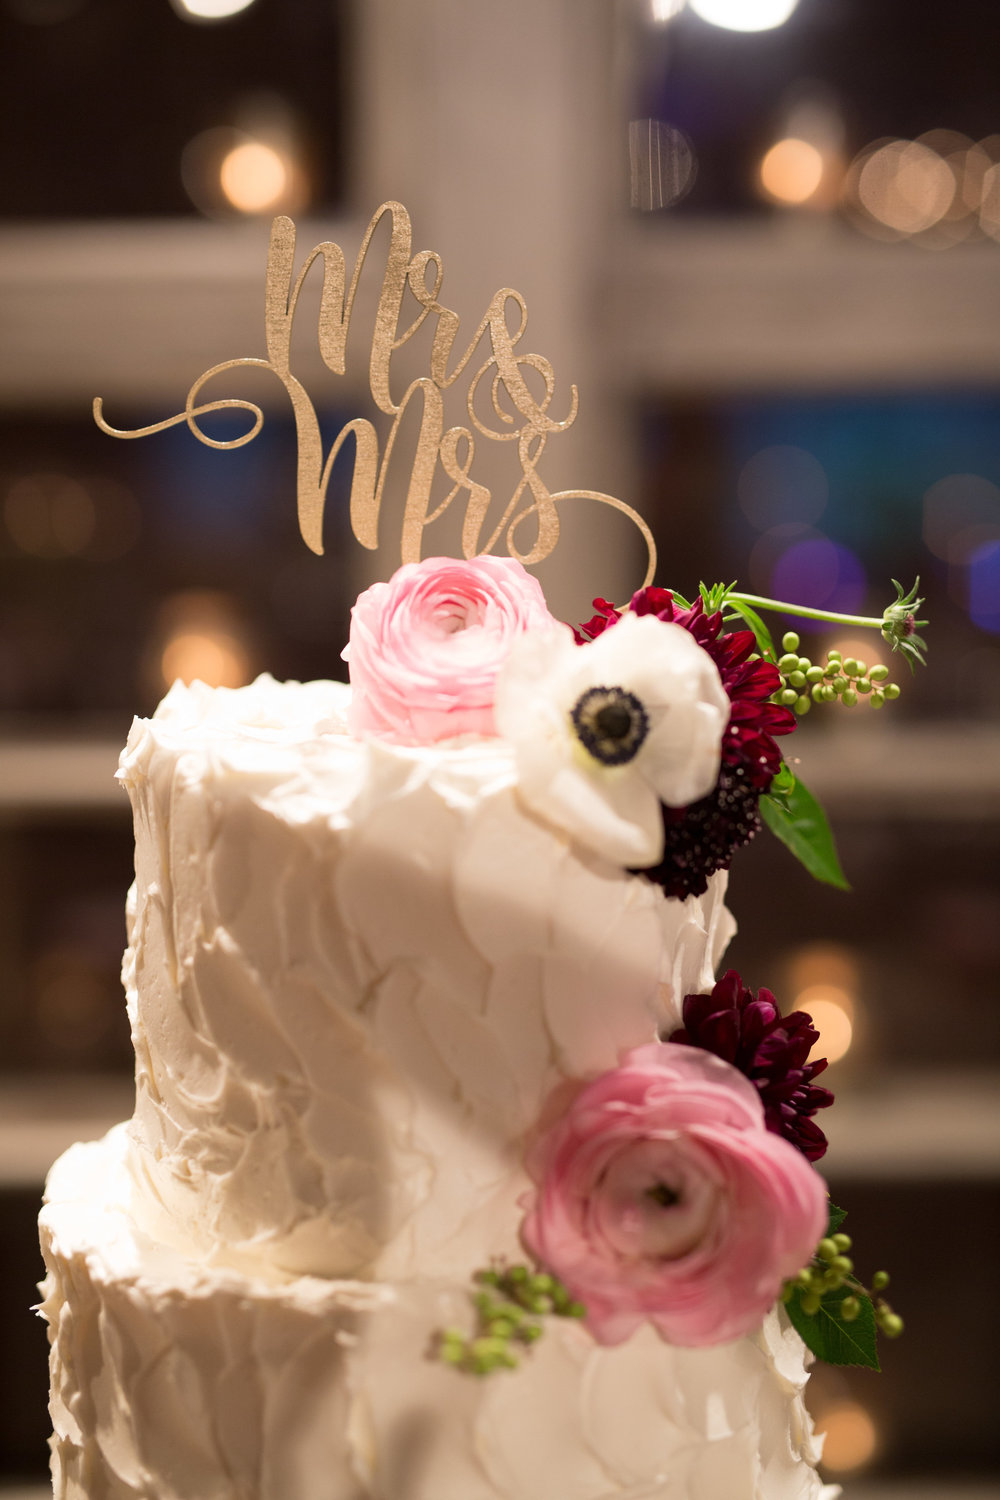 ae3c7-ashevillencmountainweddingreceptioncakeashevillencmountainweddingreceptioncake.jpg